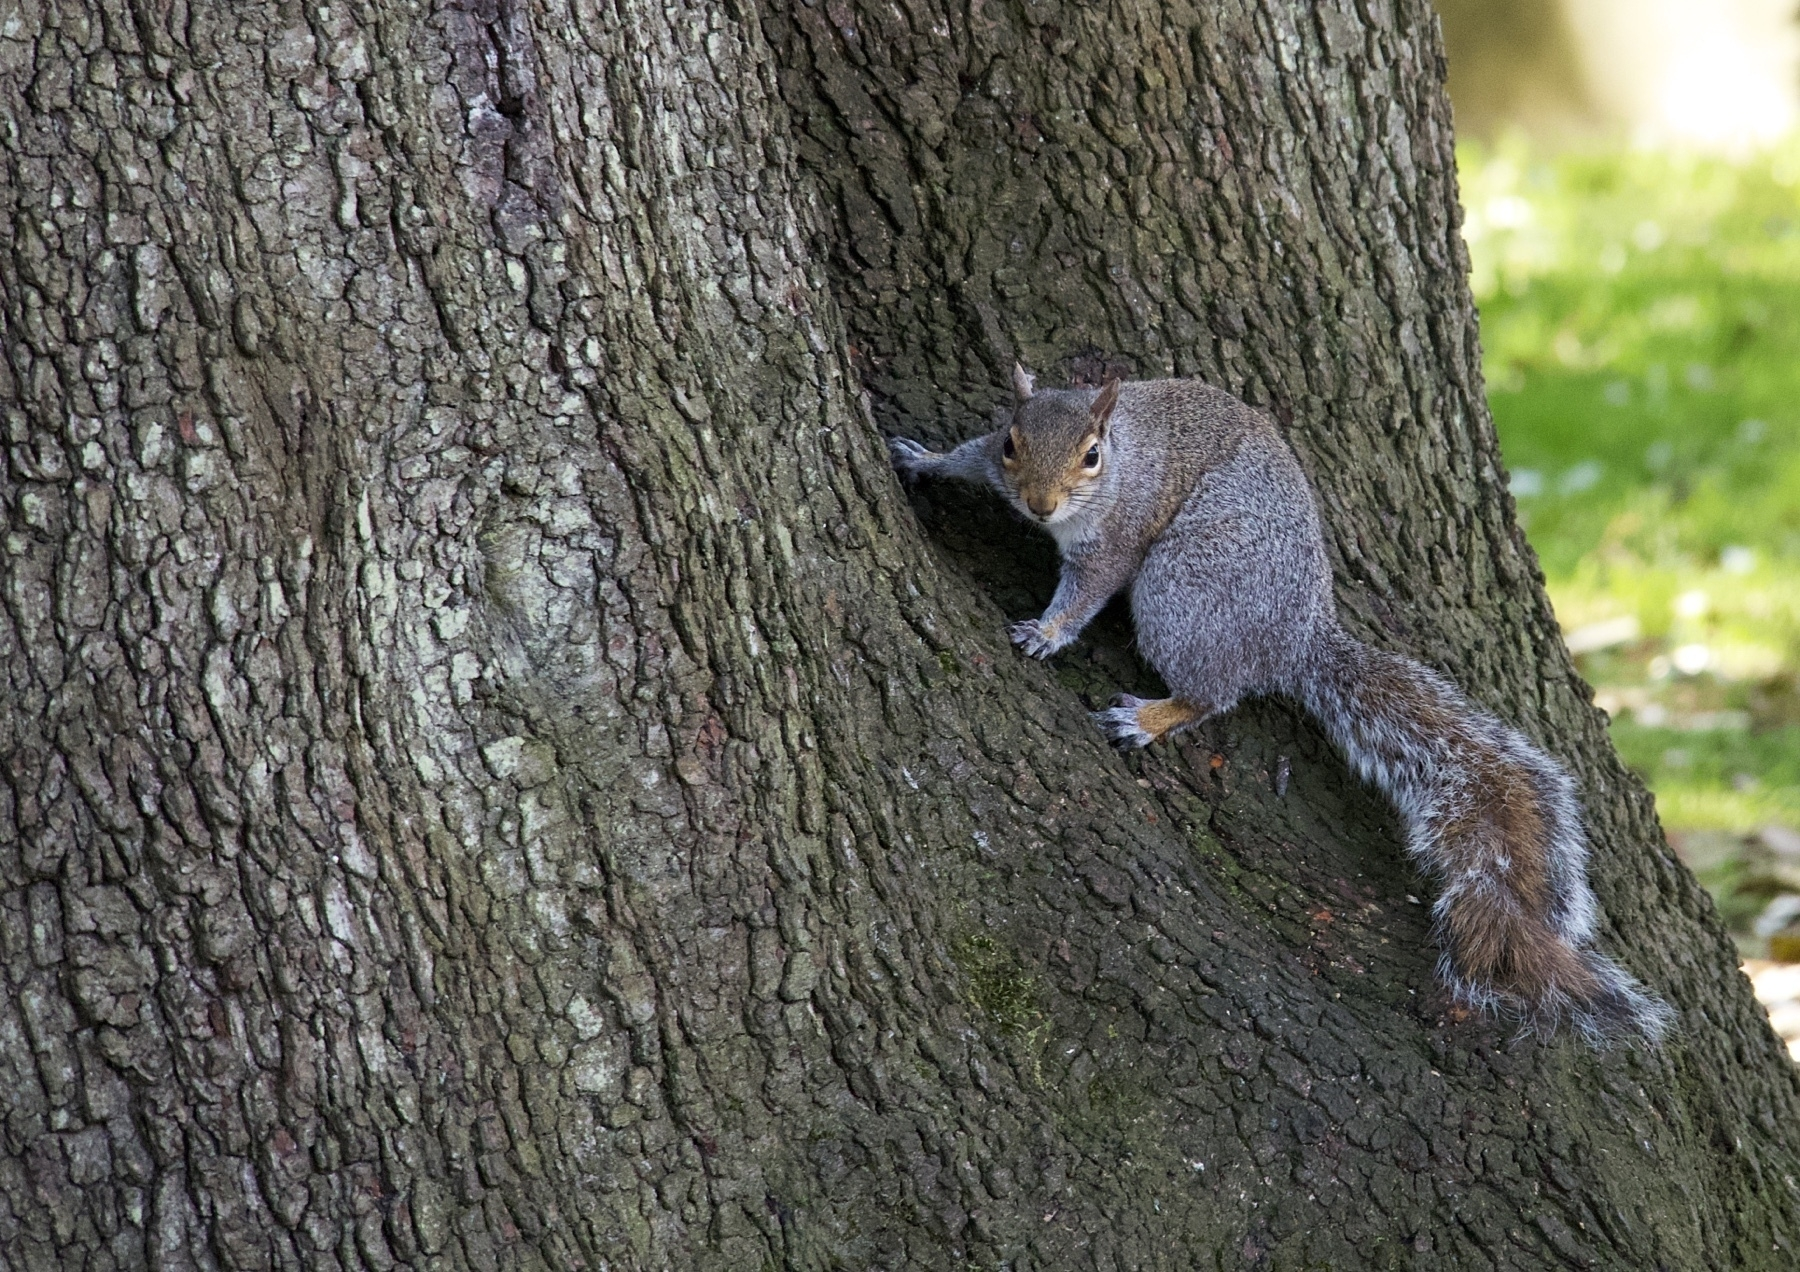 A squirrel in the churchyard of St Mary de Haura.